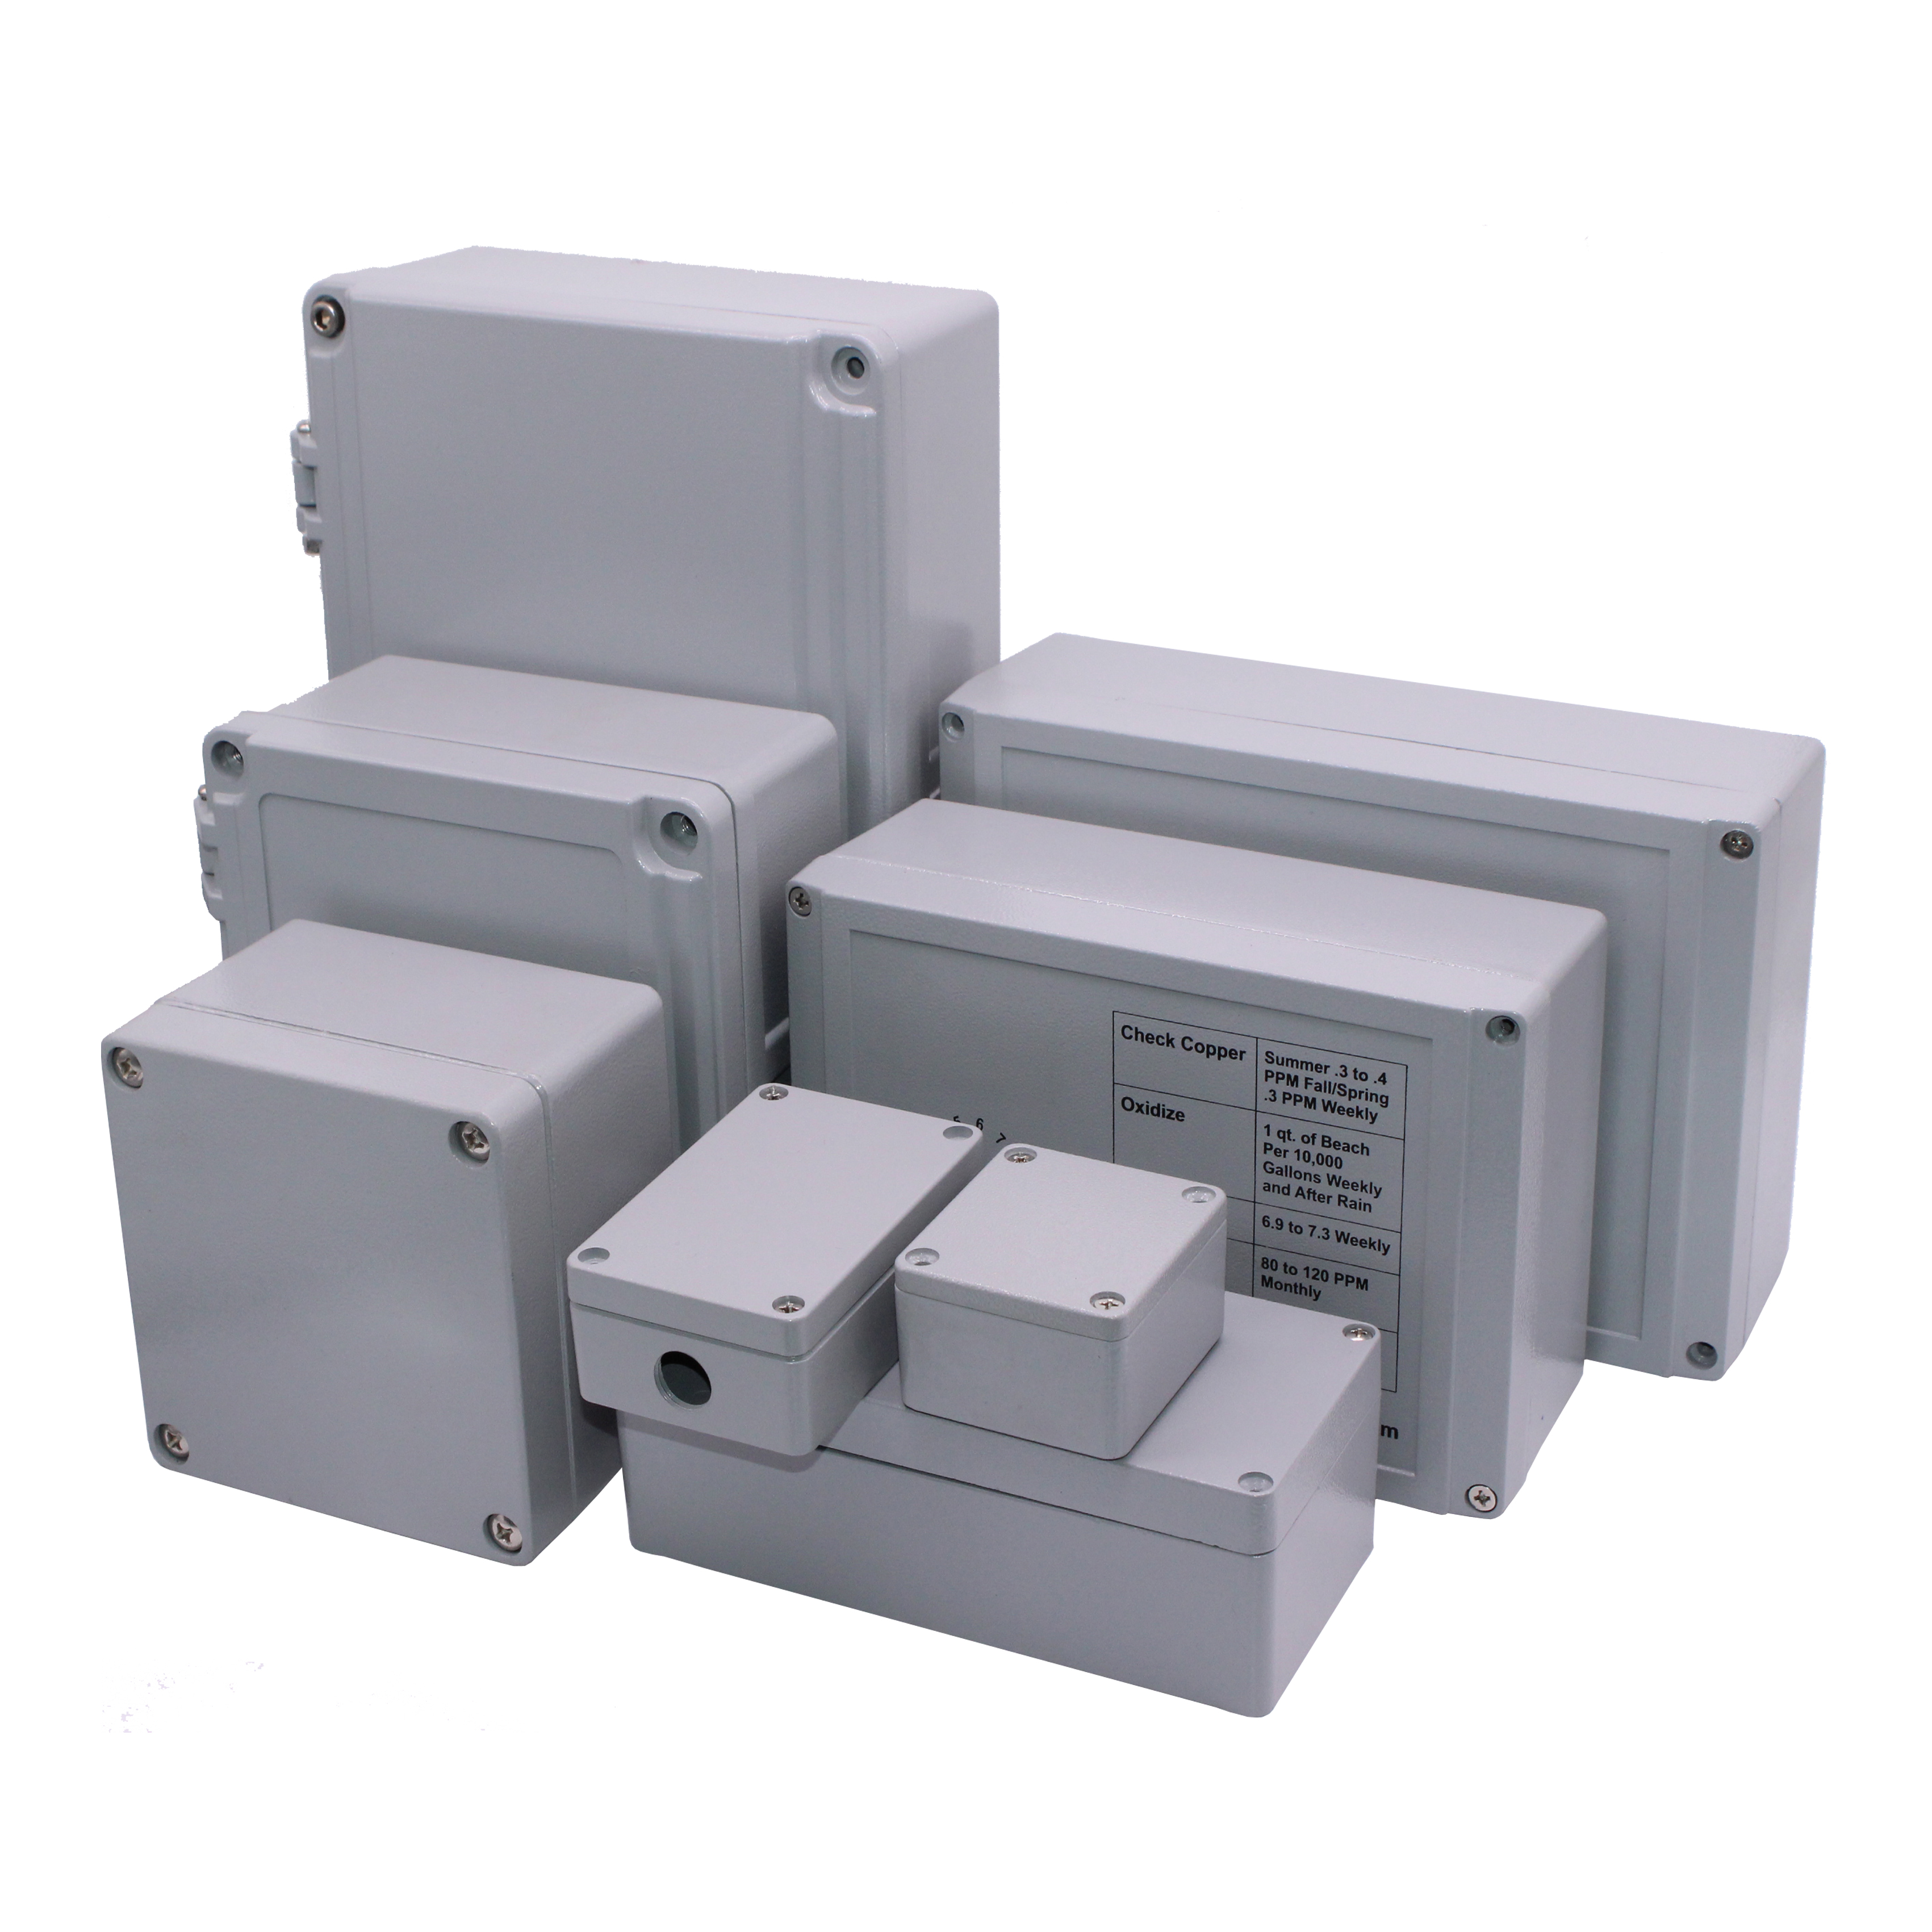 IP67 aluminum die cast enclosure/metal junction box